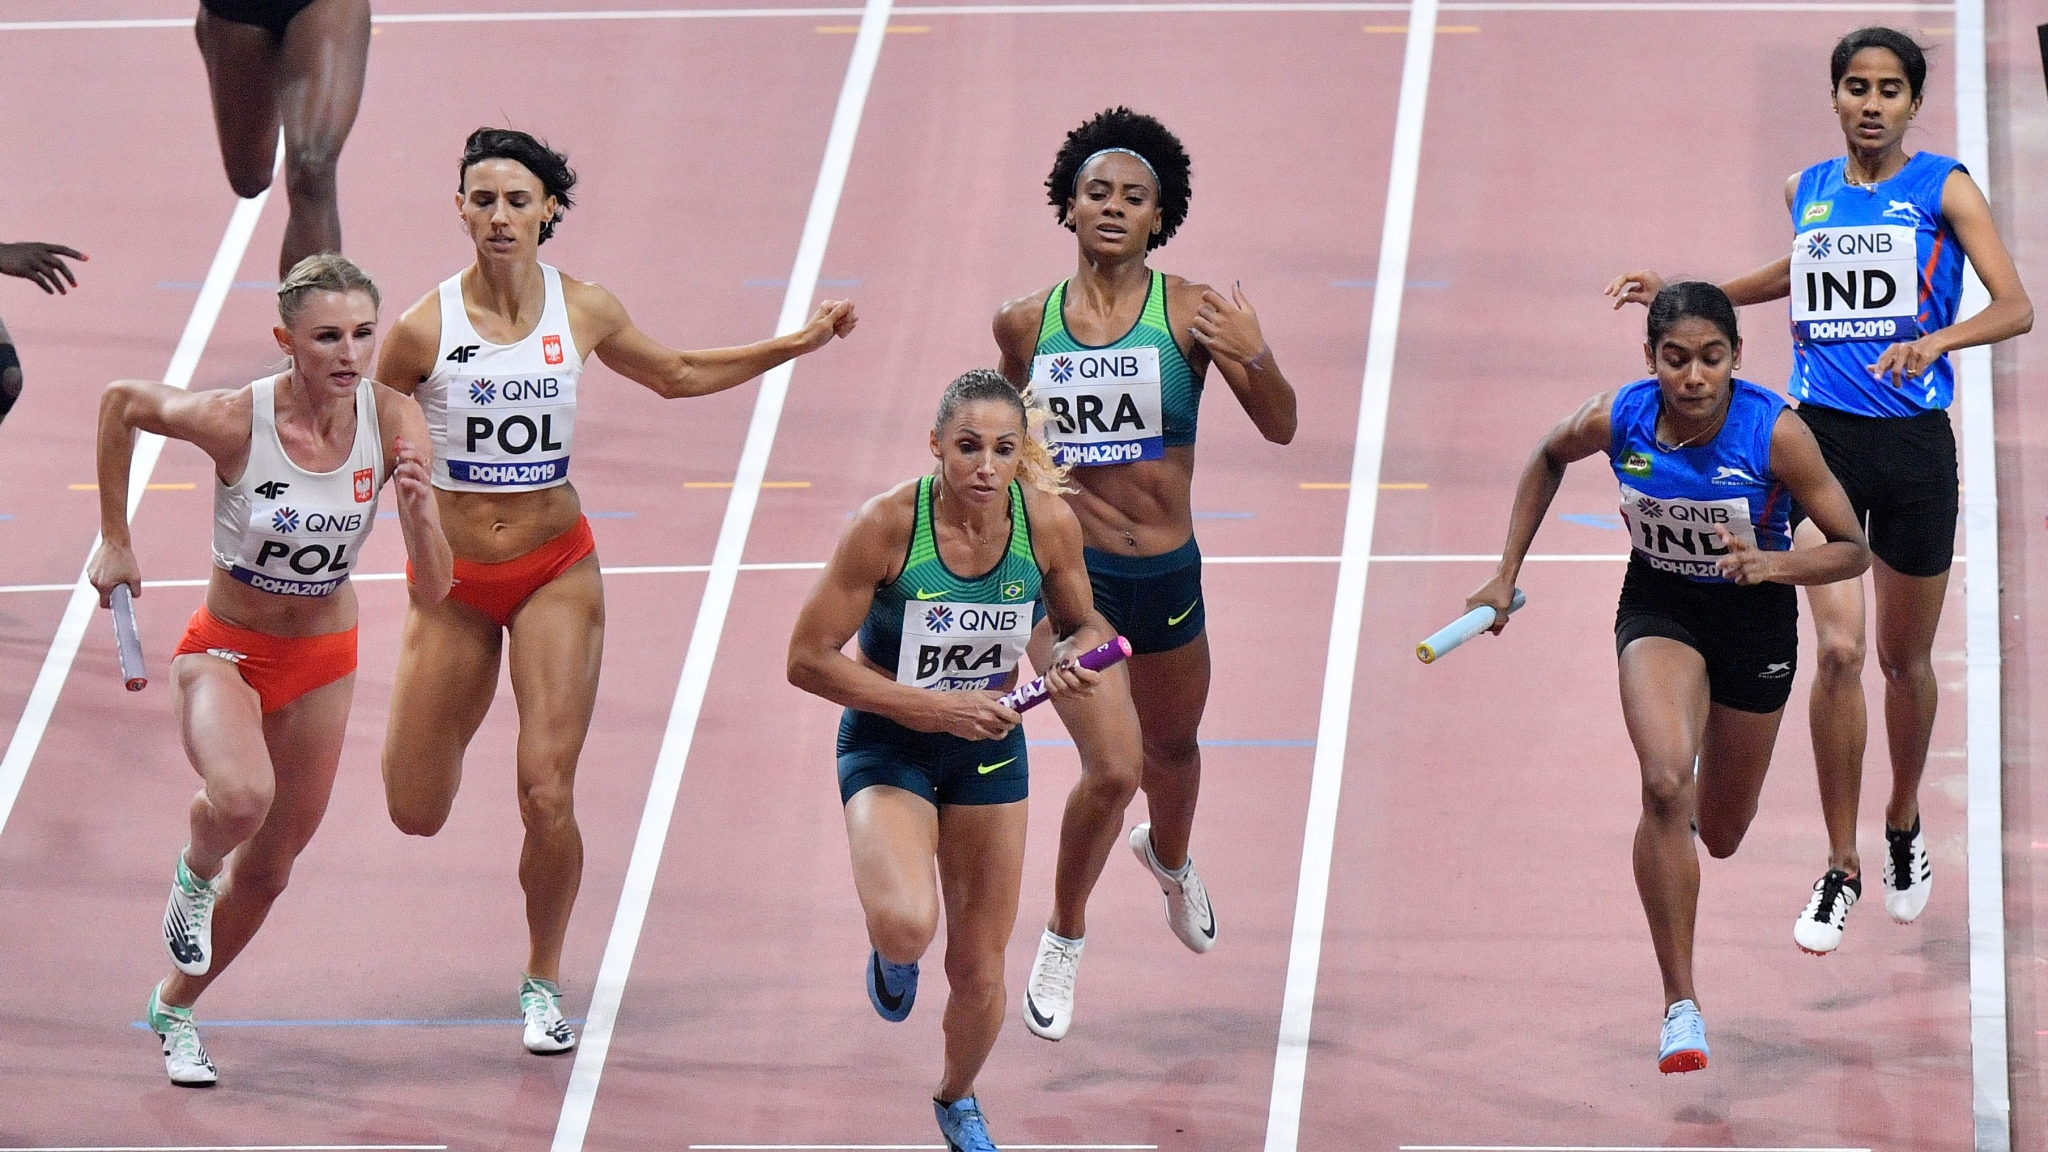 Indian Mixed 4x400m Relay Team Qualifies For 2020 Olympics